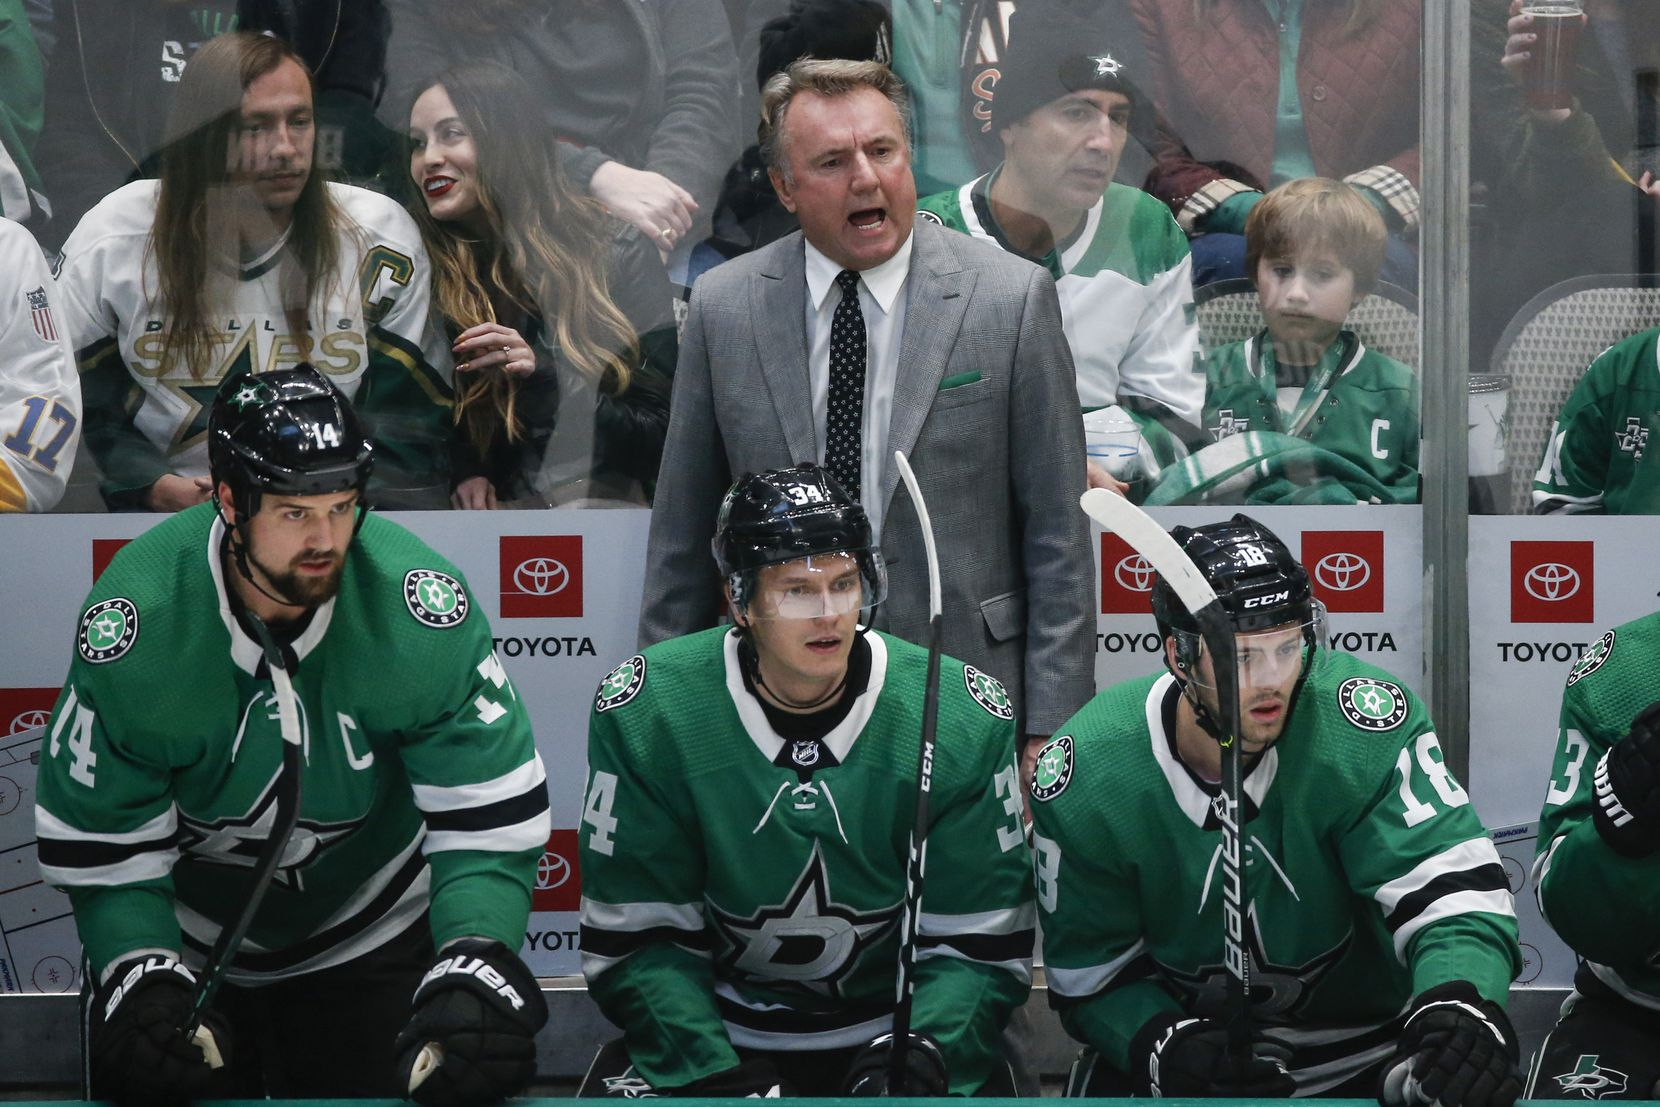 "Dallas Stars interim head coach Rick Bowness works the bench during the first period of a National Hockey League match between the Dallas Stars and the New Jersey Devils on Tuesday, Dec. 10, 2019 at American Airlines Center in Dallas. The Stars fired coach Jim Montgomery for ""unprofessional conduct"" on Tuesday morning, ending his second season behind the bench. The team failed to disclose exactly why Montgomery was dismissed. (Ryan Michalesko/The Dallas Morning News)"